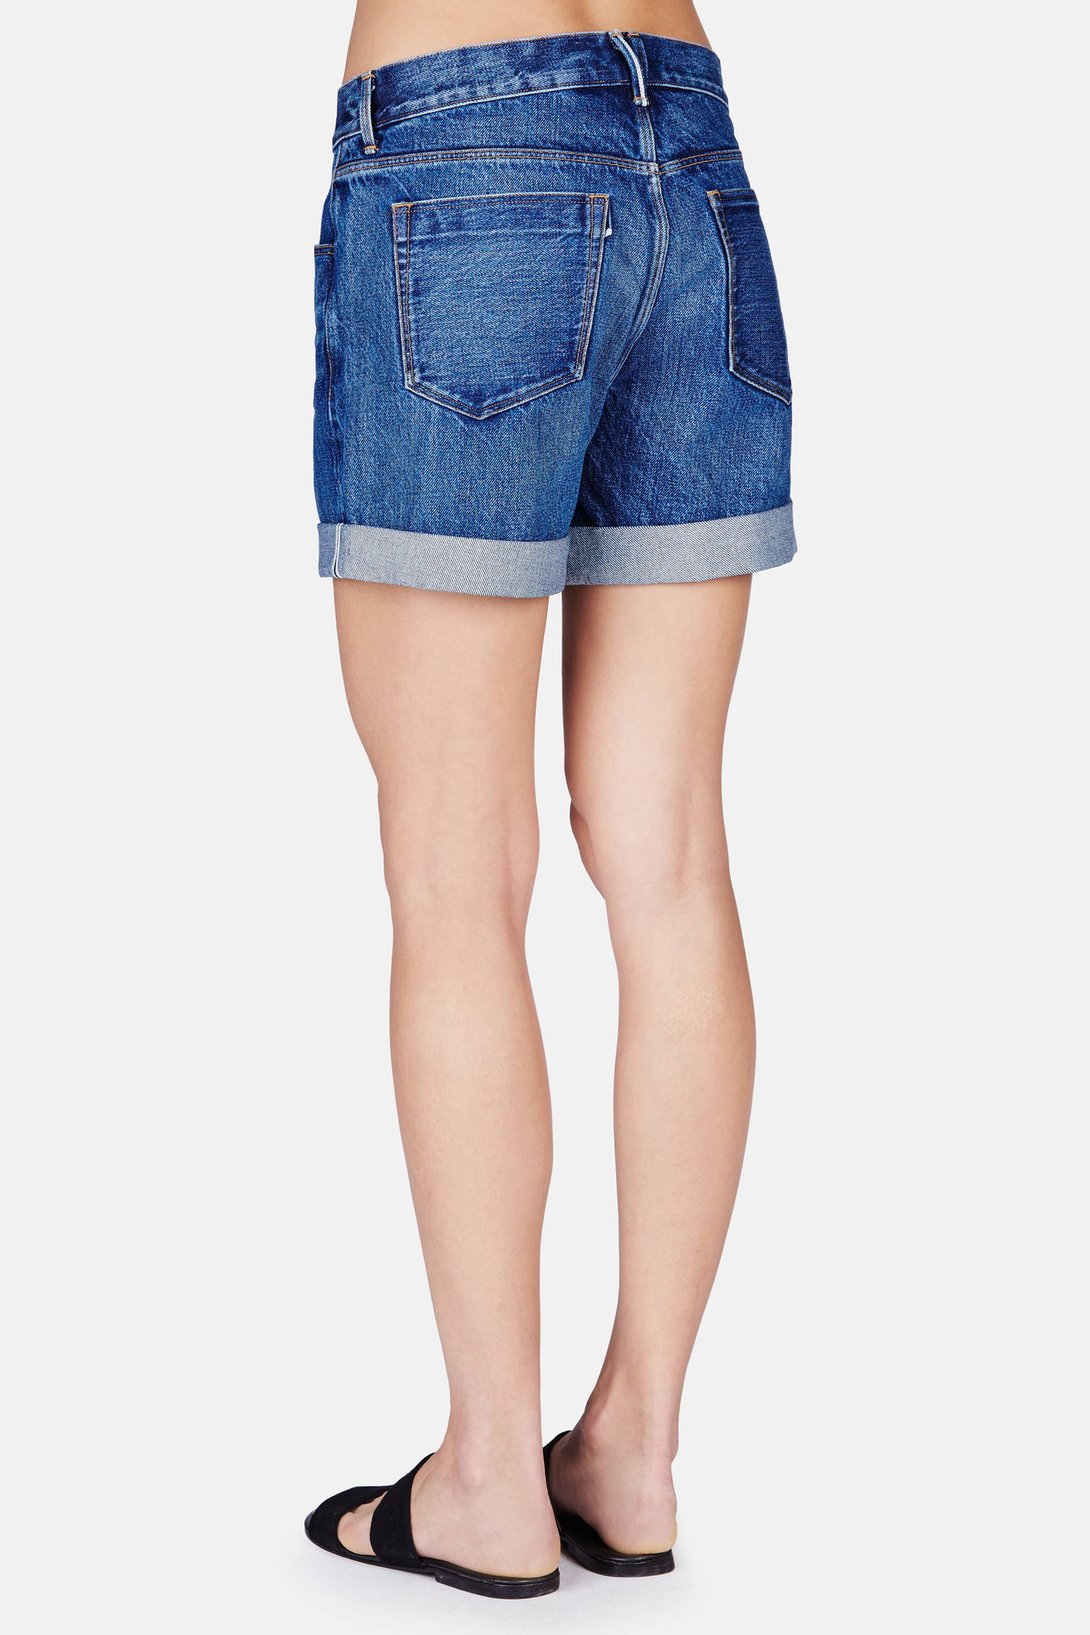 15783fbeea96 Shop 3 x 1 Washed Boyfriend Short in Classic Vintage from The Best of NYC  Designer Sample Sale Women s Pants   Shorts Sample Sale